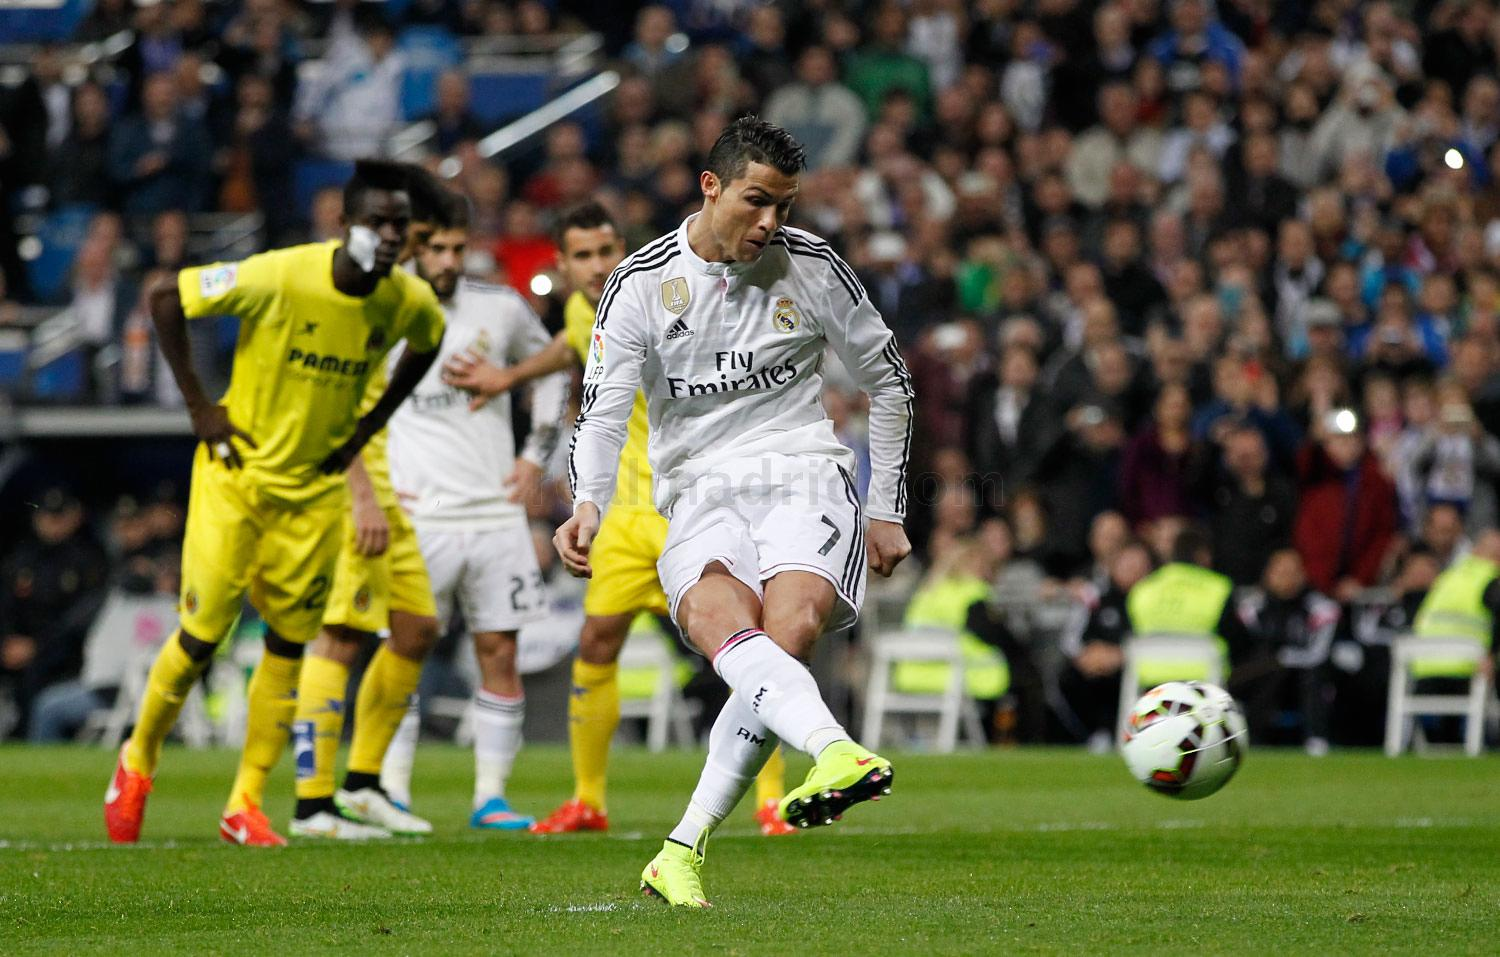 Real Madrid - Real Madrid - Villarreal - 01-03-2015